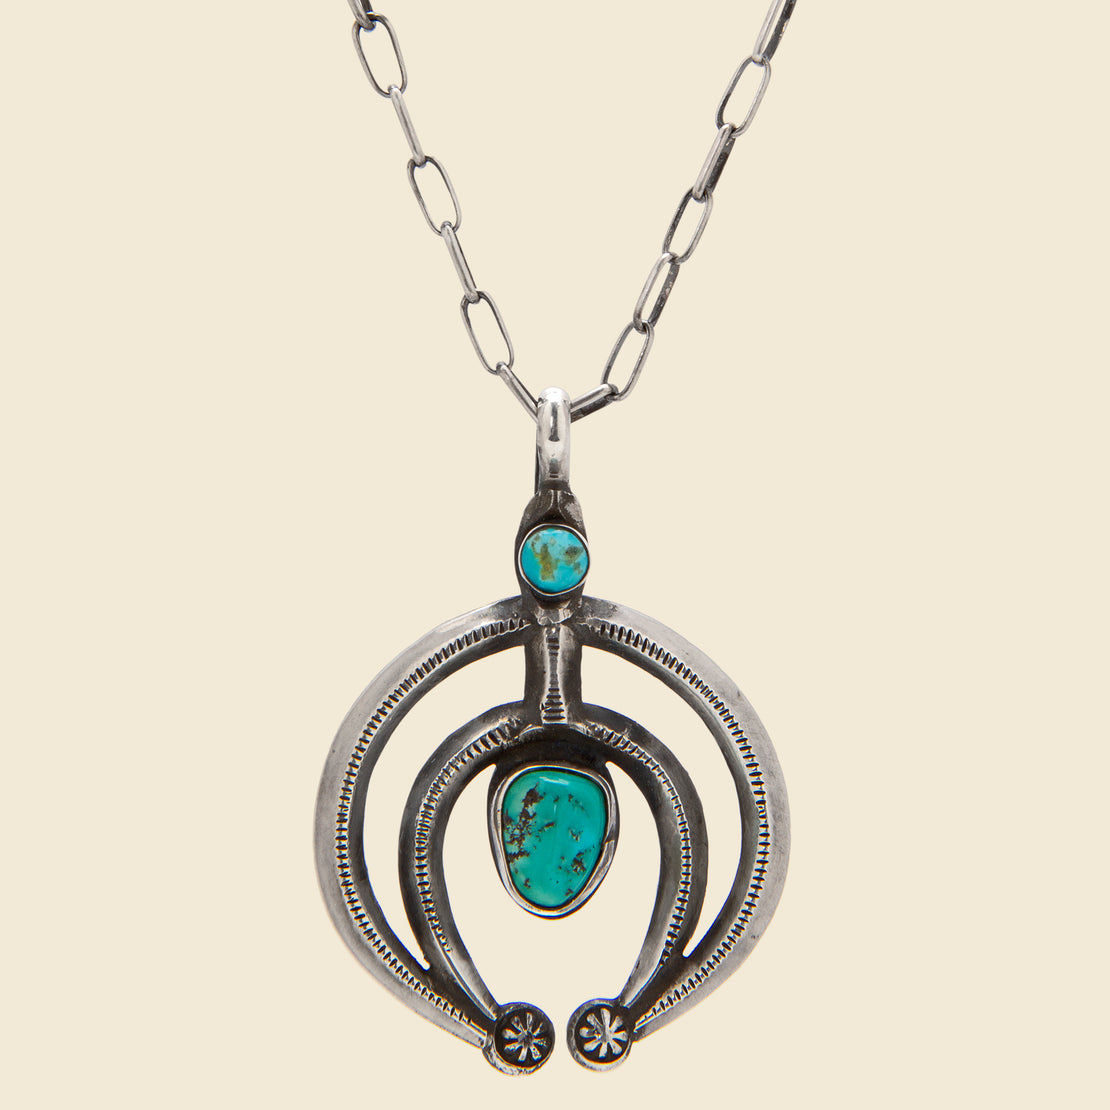 Smith Bros. Trading Co. Naja Pendant Necklace - Sterling Silver/Turquoise